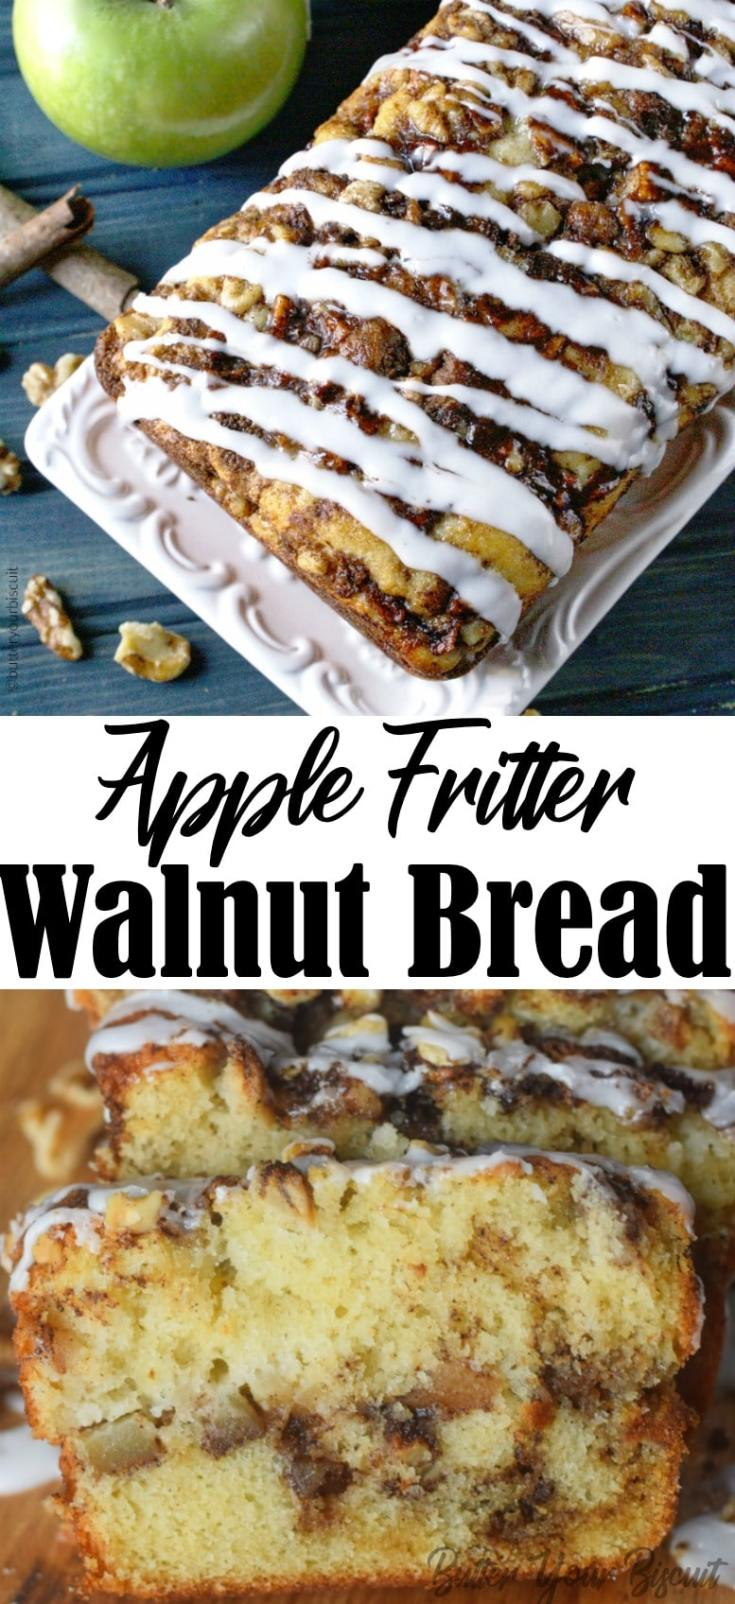 This Apple Walnut Fritter Bread is insanely delicious loaded with apples and swirls of cinnamon.